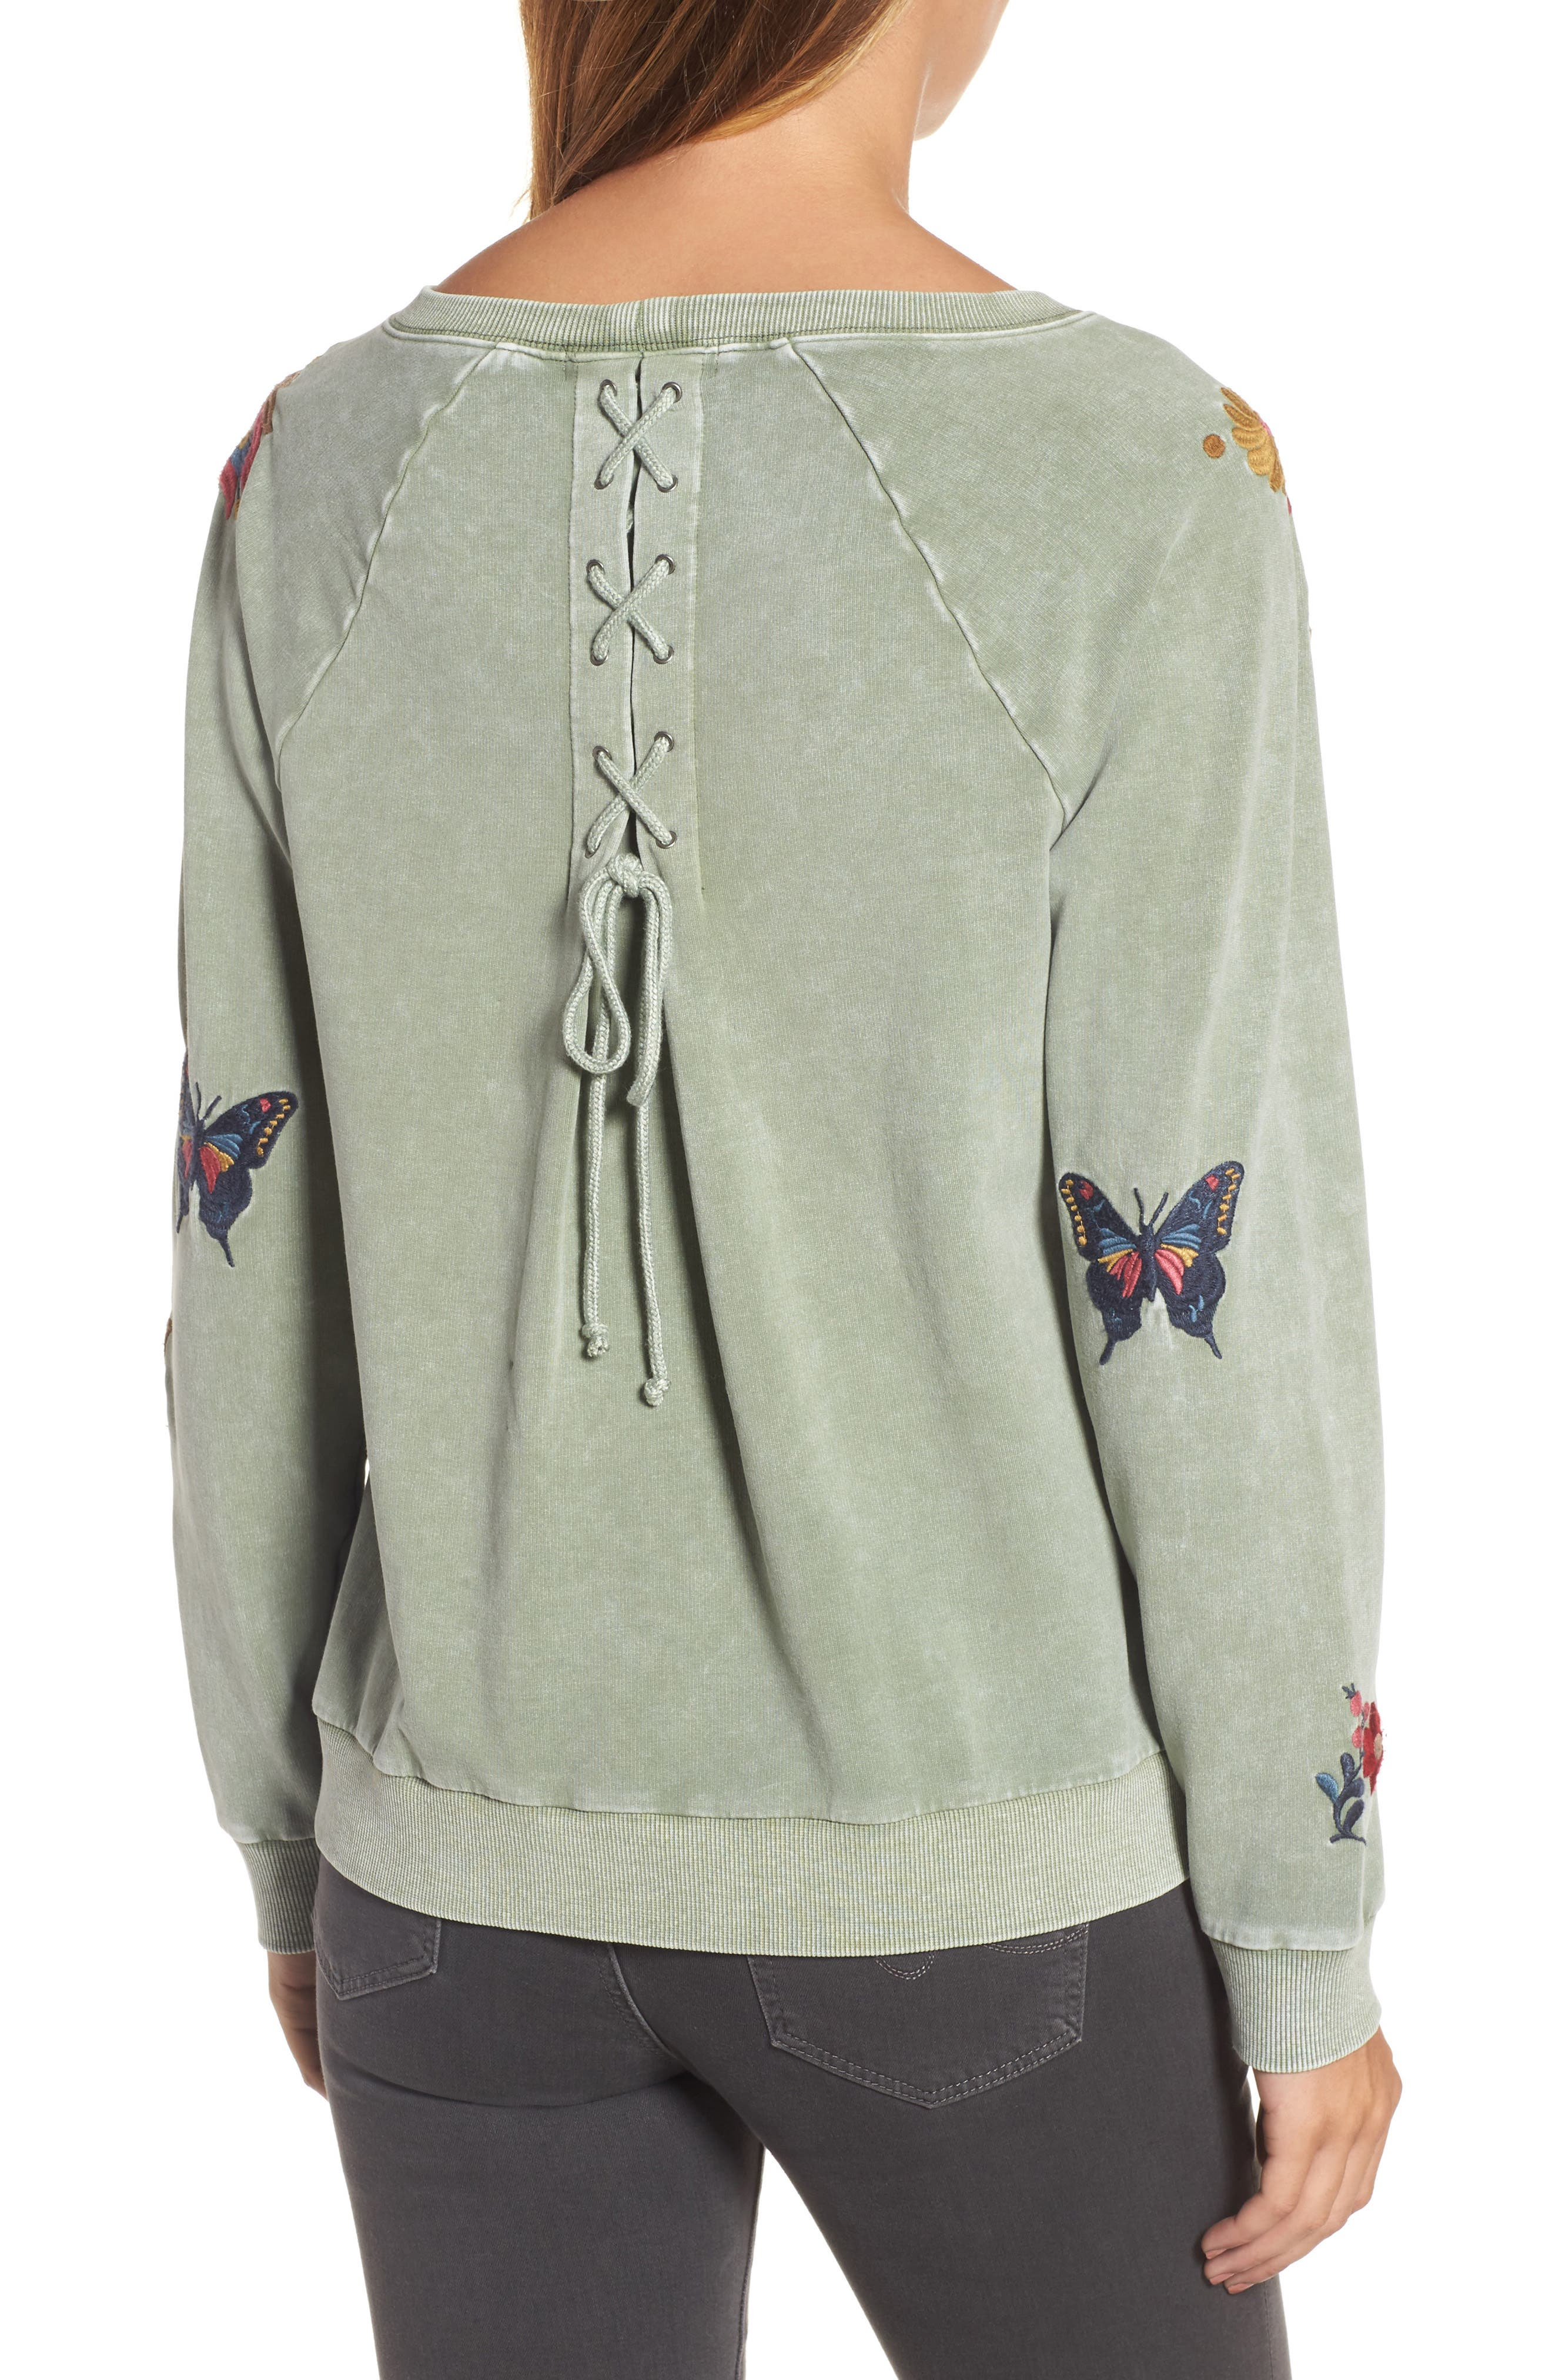 Embroidered Lace-Up Back Sweatshirt,                             Alternate thumbnail 2, color,                             301